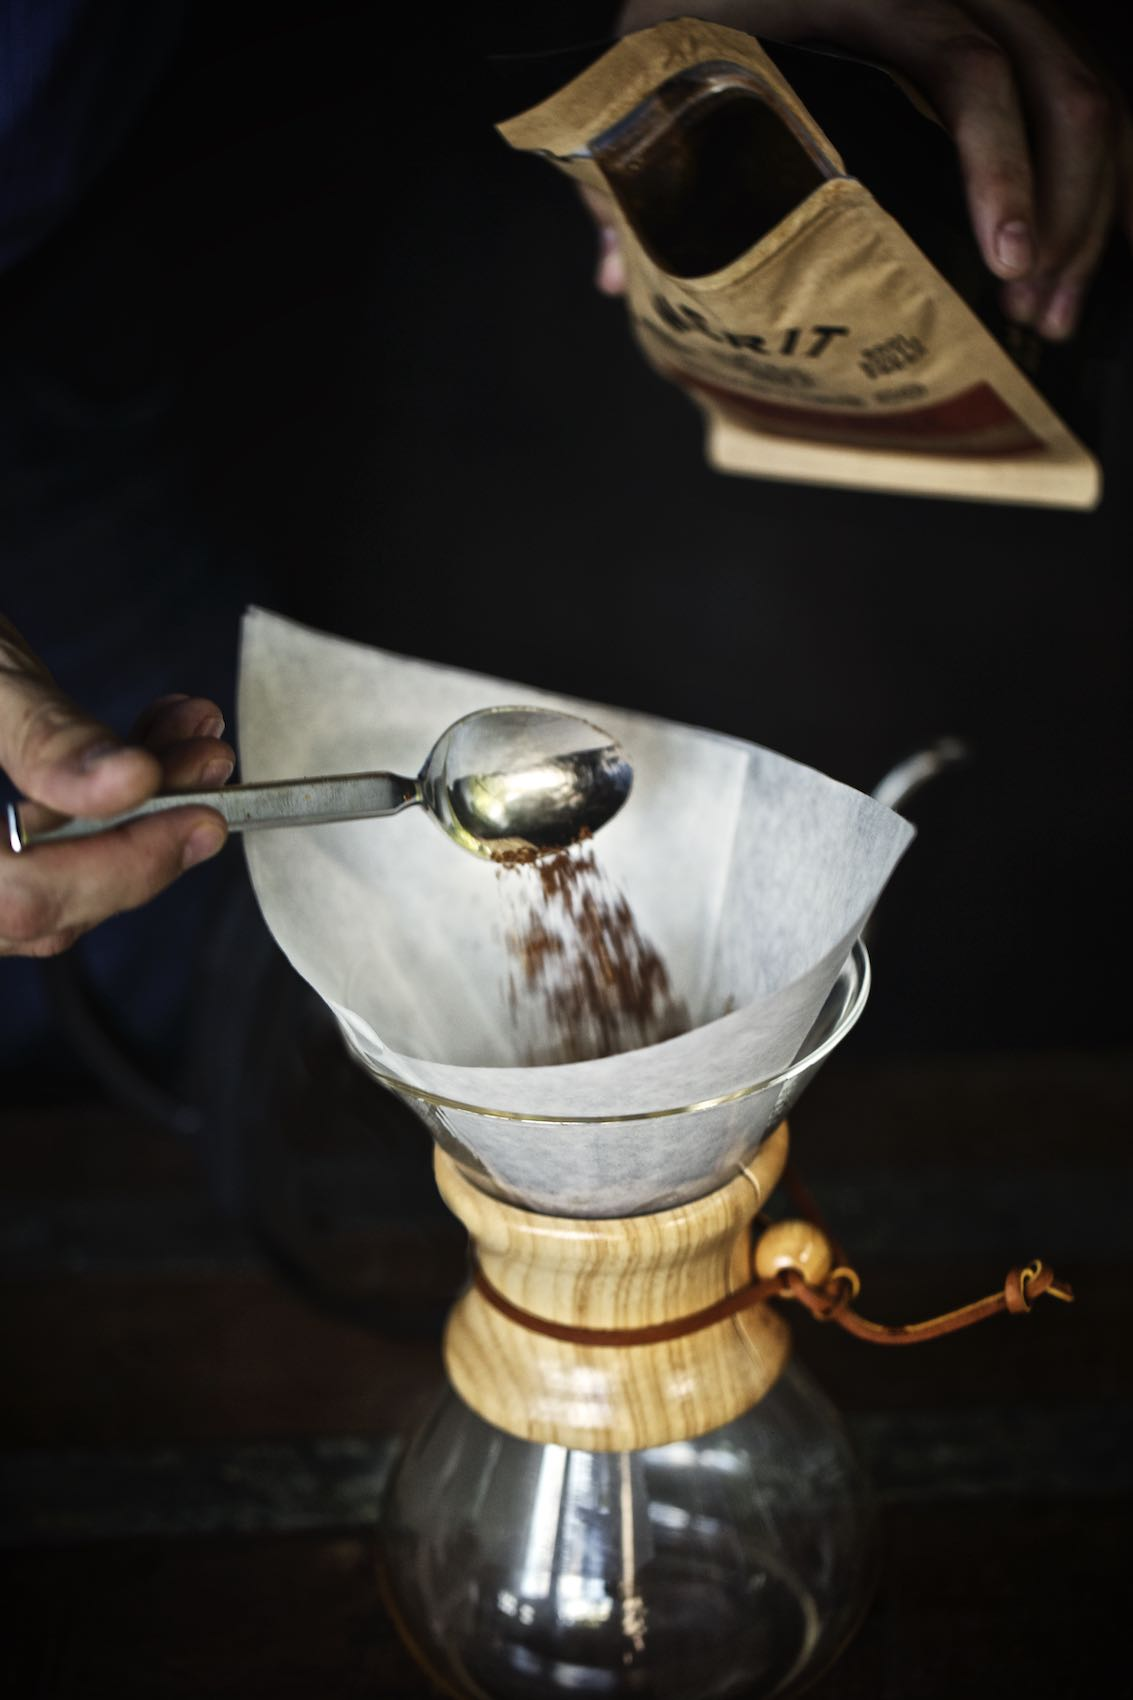 Jody Horton Photography - Coffee added to Chemex at Hotel Emma, San Antonio.